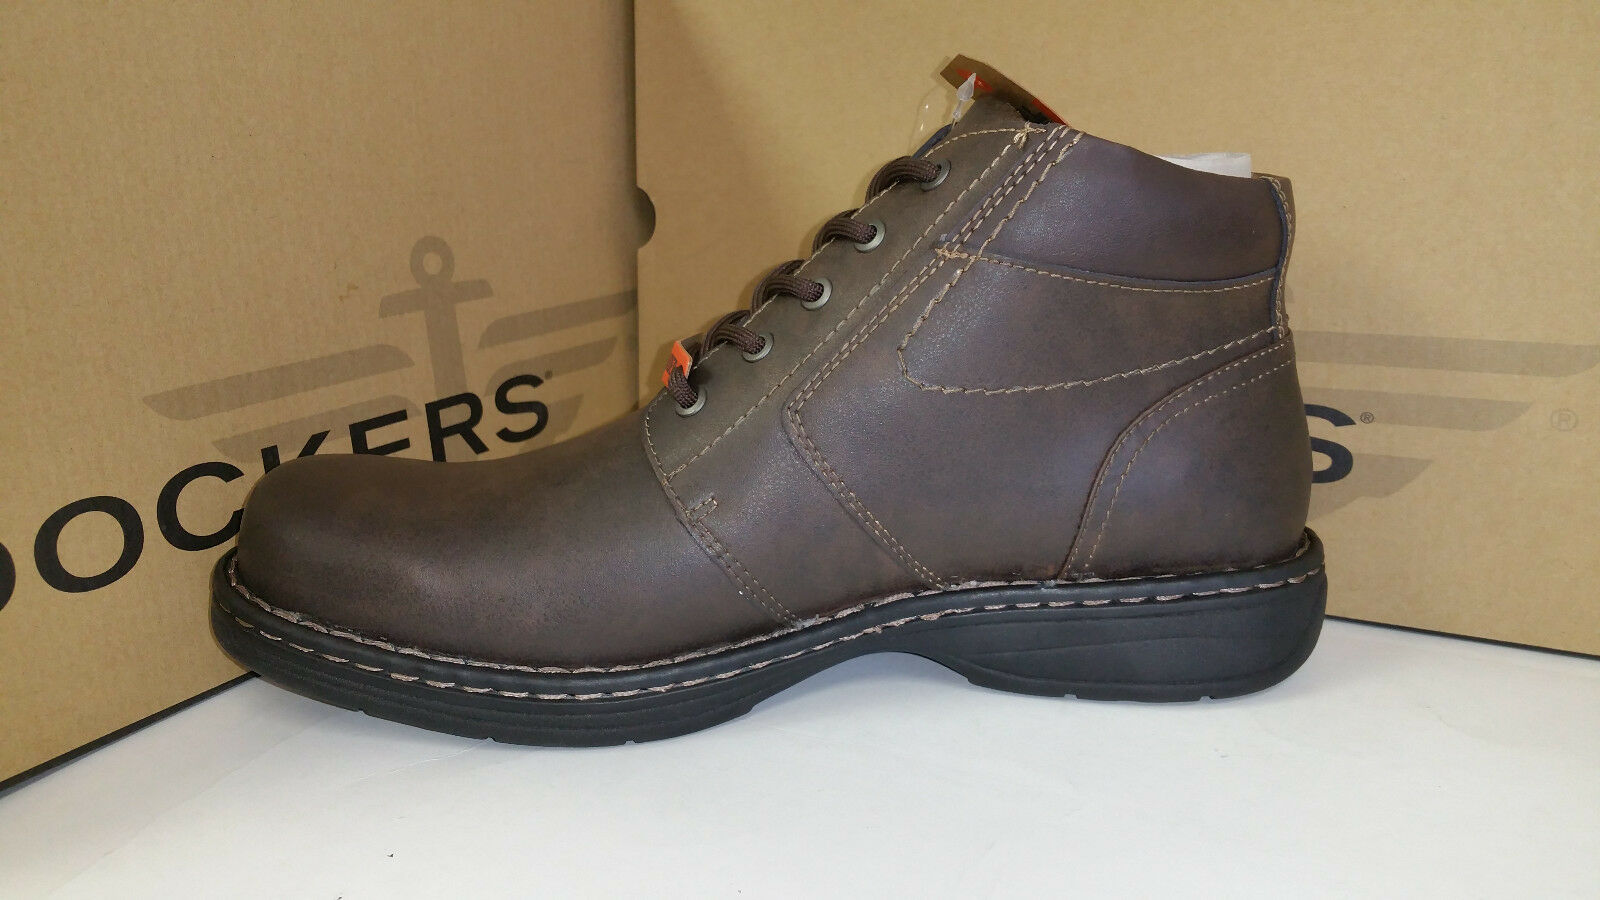 Dockers Kingman Stain Defender size Brown Leather Casual Shoes size Defender 7-12 682995